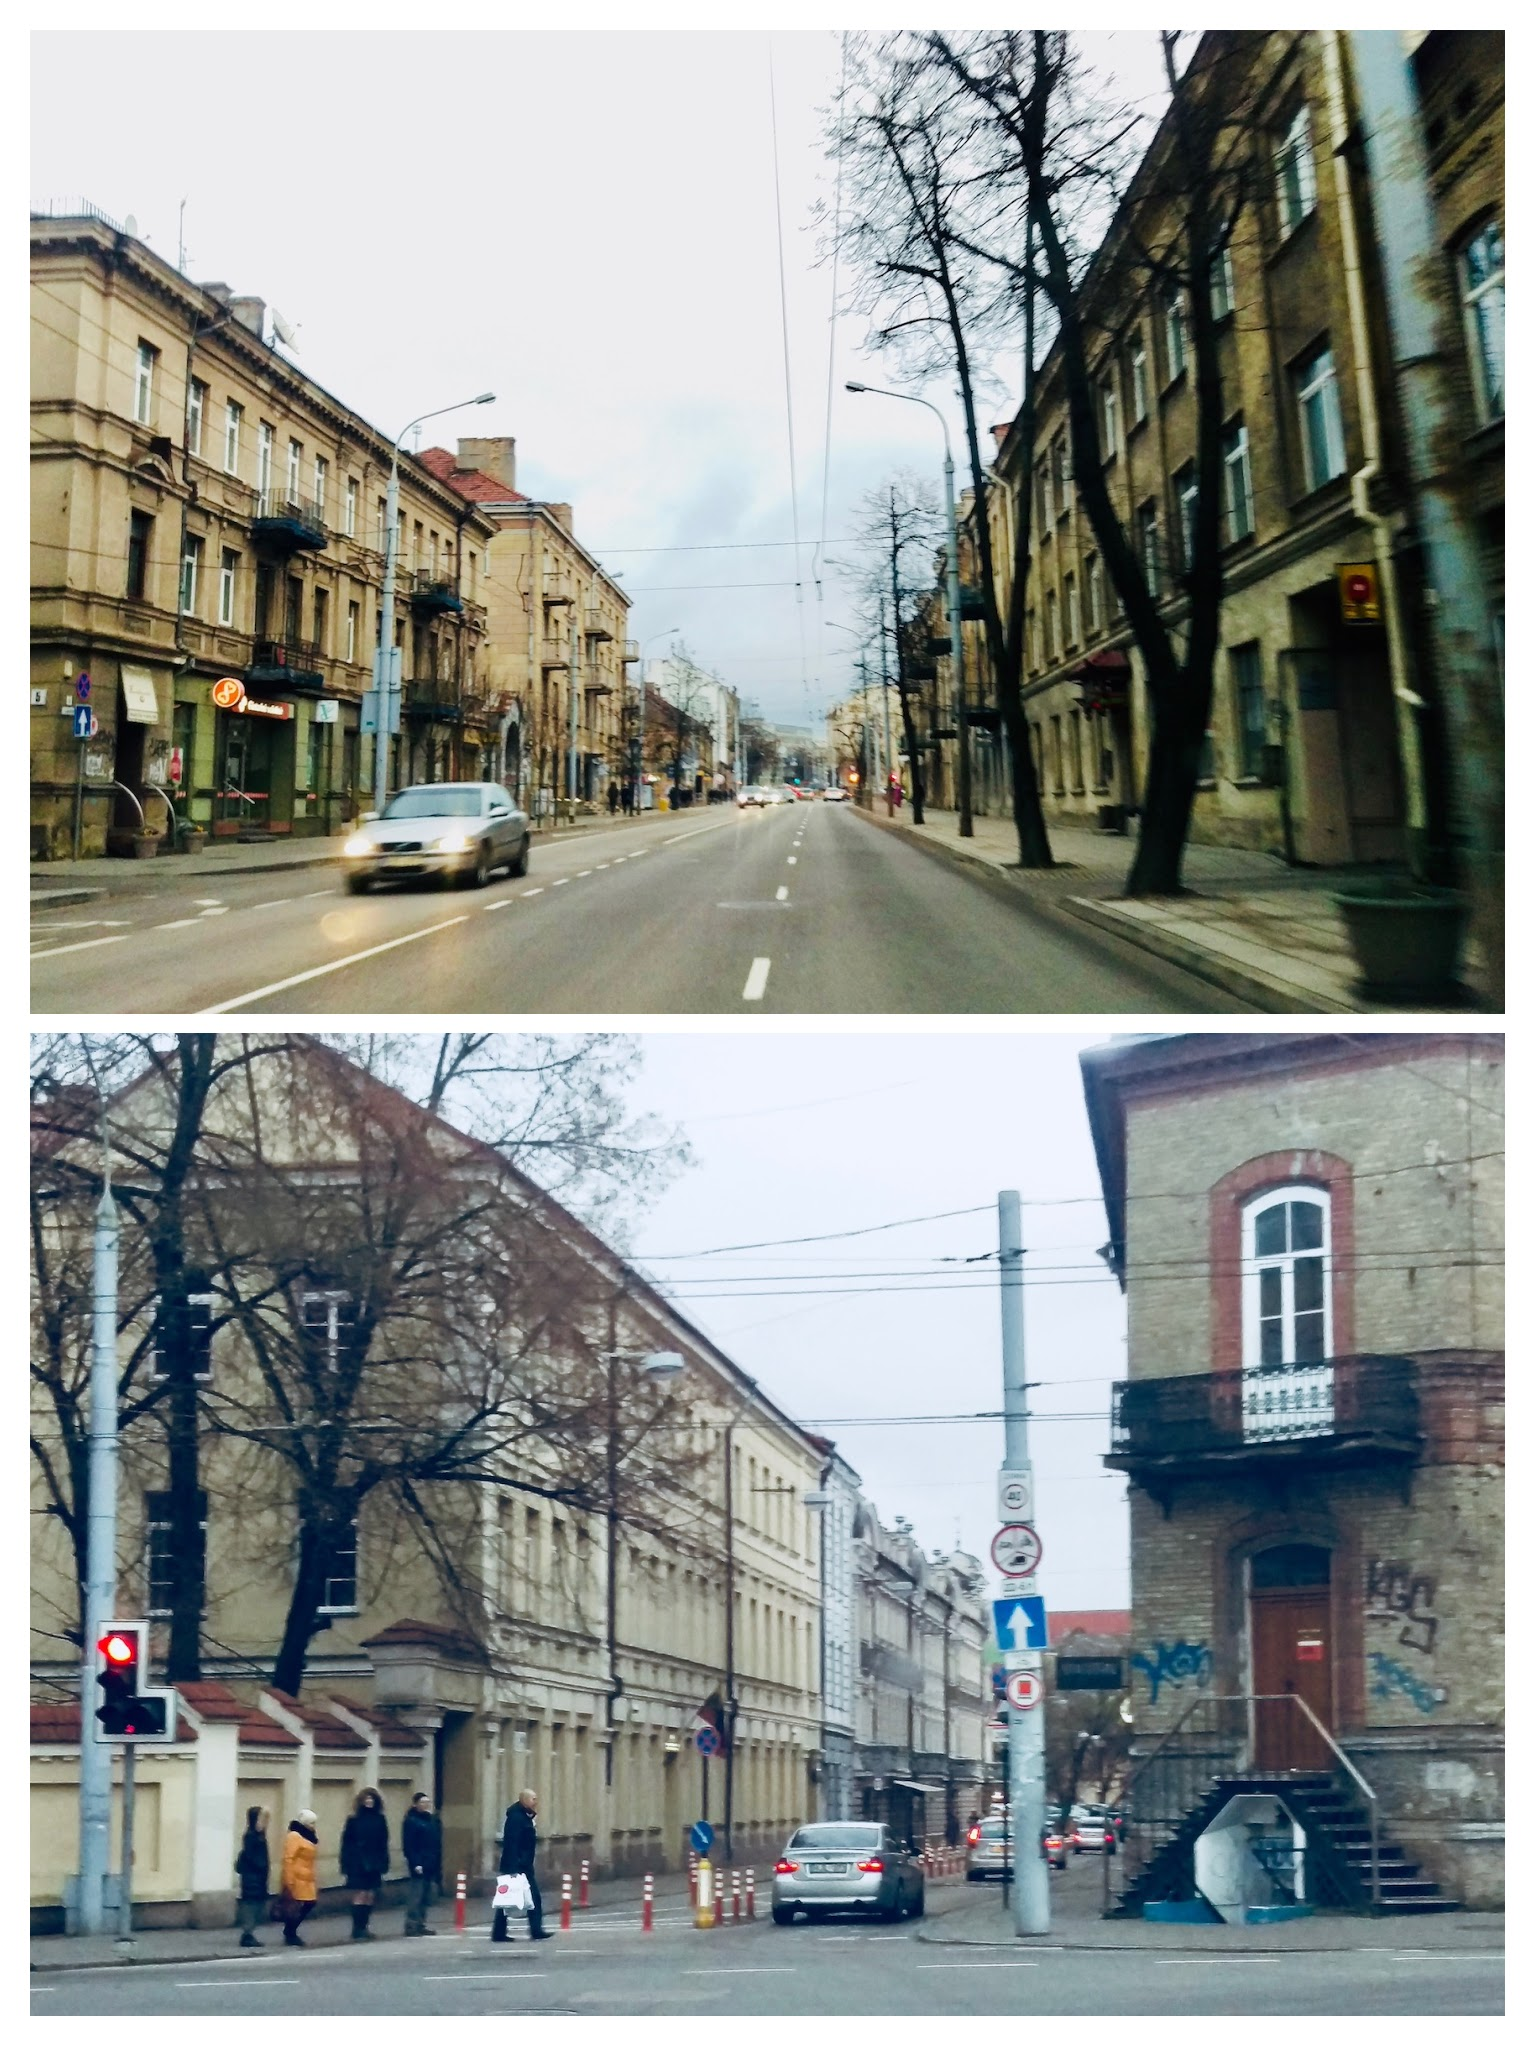 Entering the Center neighborhood and Old Town neighborhood in Vilnius